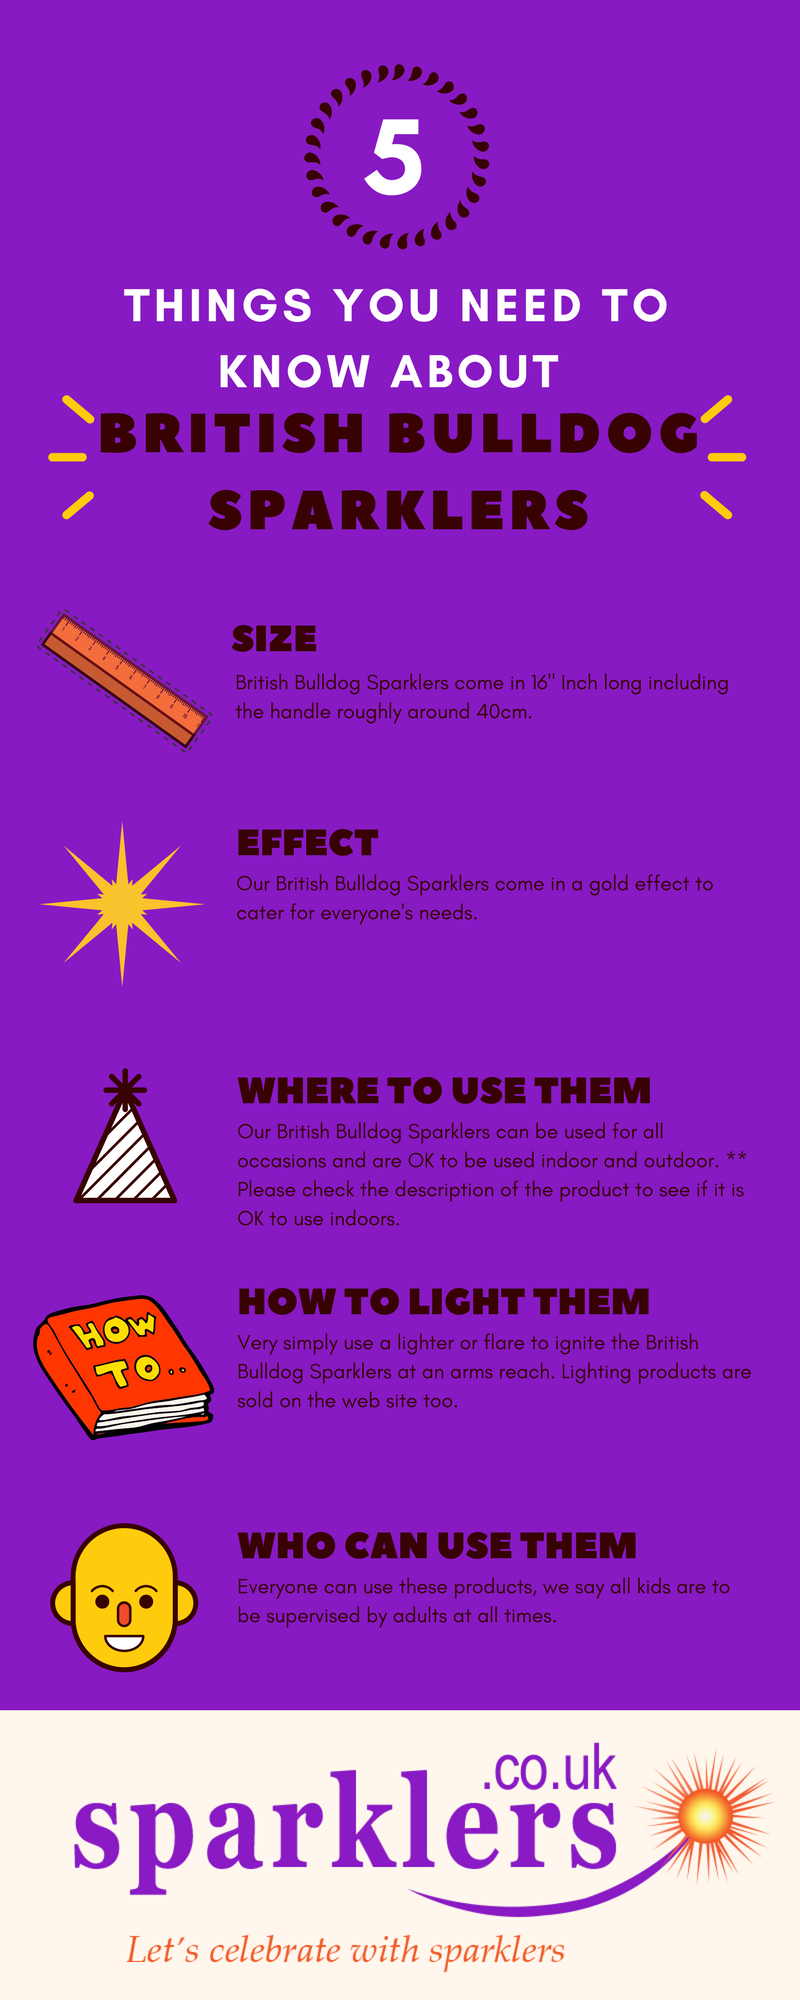 British-Bulldog-Sparklers-info-graphic